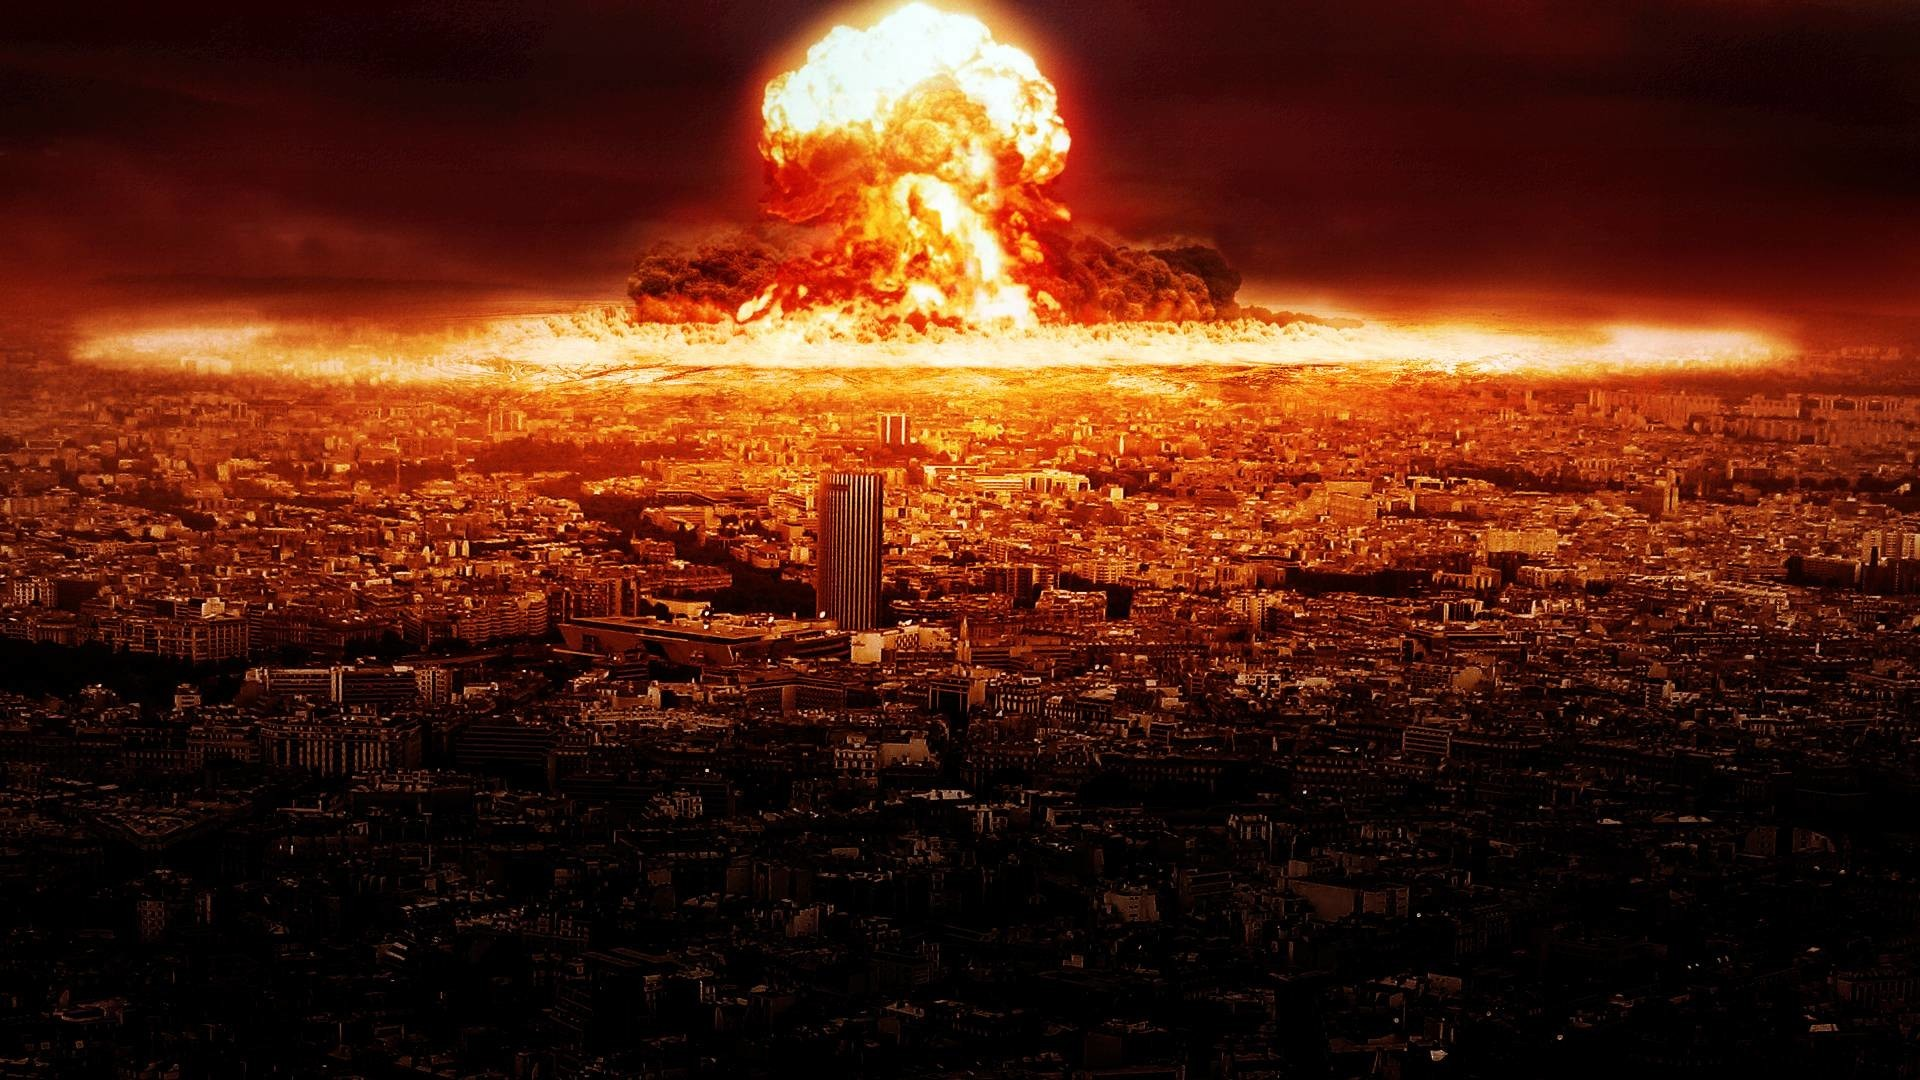 Res: 1920x1080, Sci Fi - Apocalyptic Nuclear Blast Explosion Bomb Nuclear Bomb Wallpaper  2560x1600